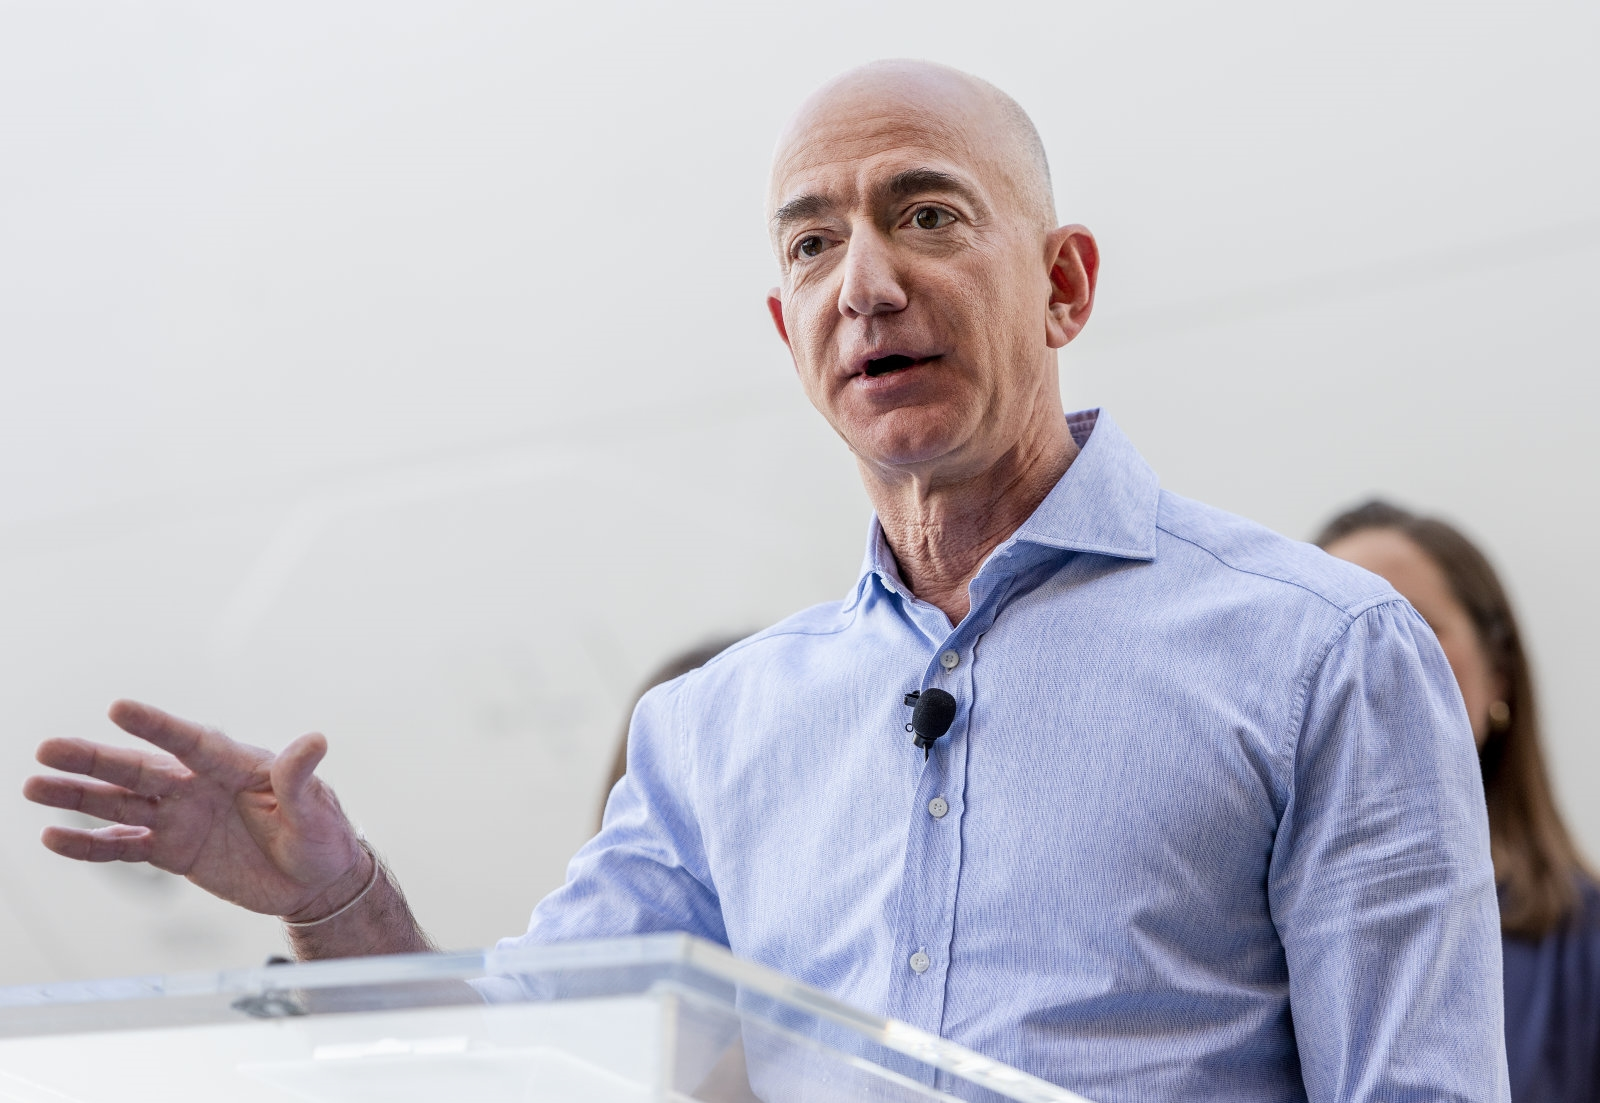 Jeff Bezos accuses the National Enquirer of 'extortion and blackmail' | DeviceDaily.com